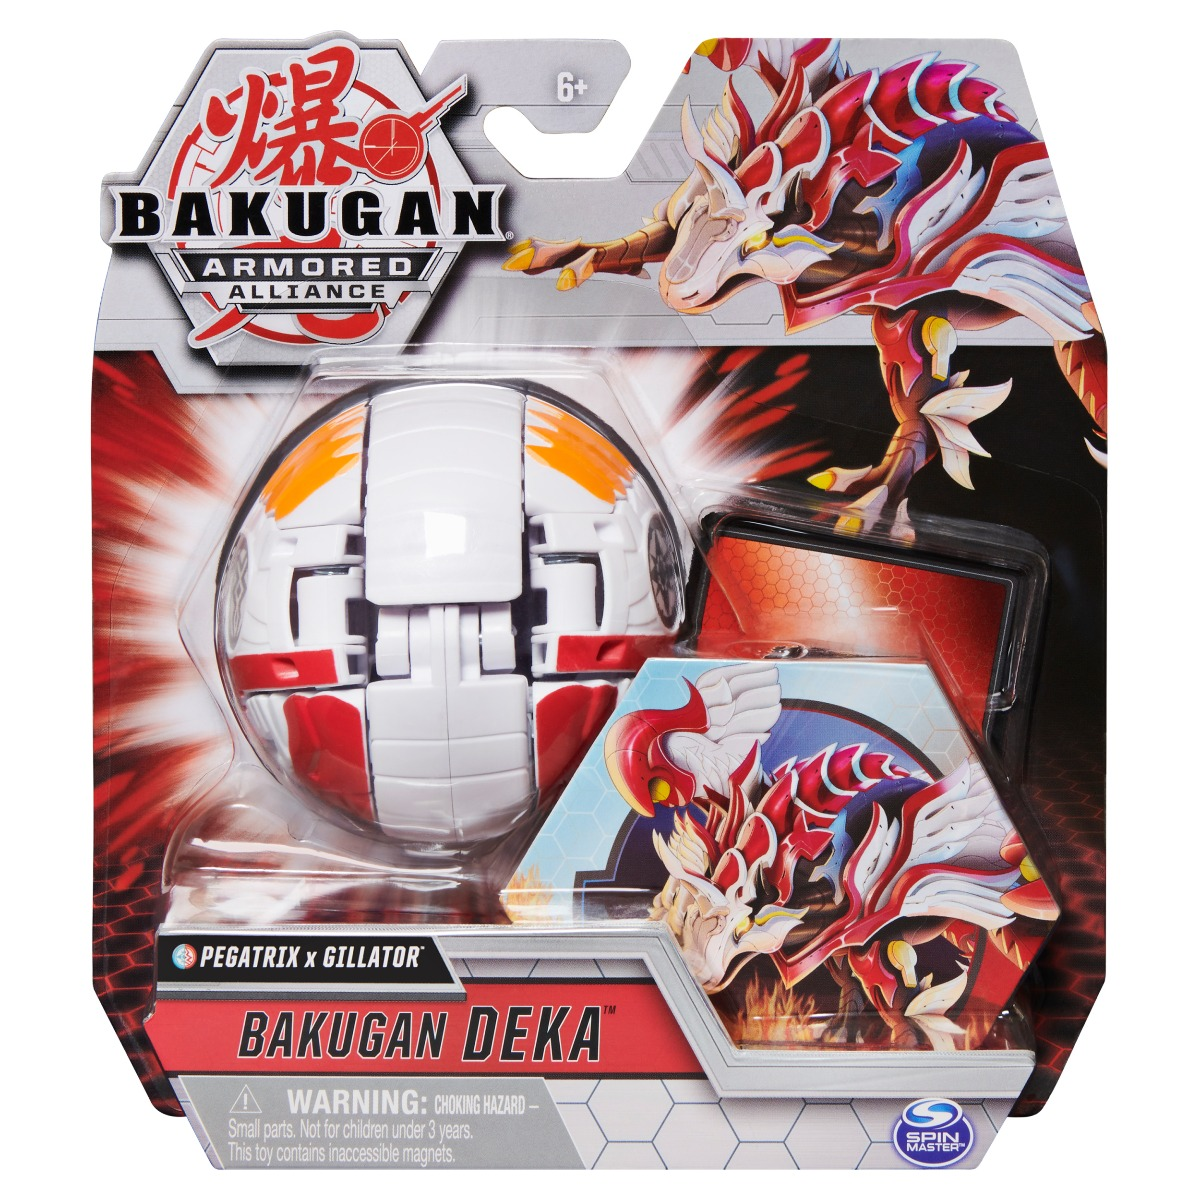 Figurina Bakugan Deka Armored Alliance, Pegatrix x Gillator, 20125931